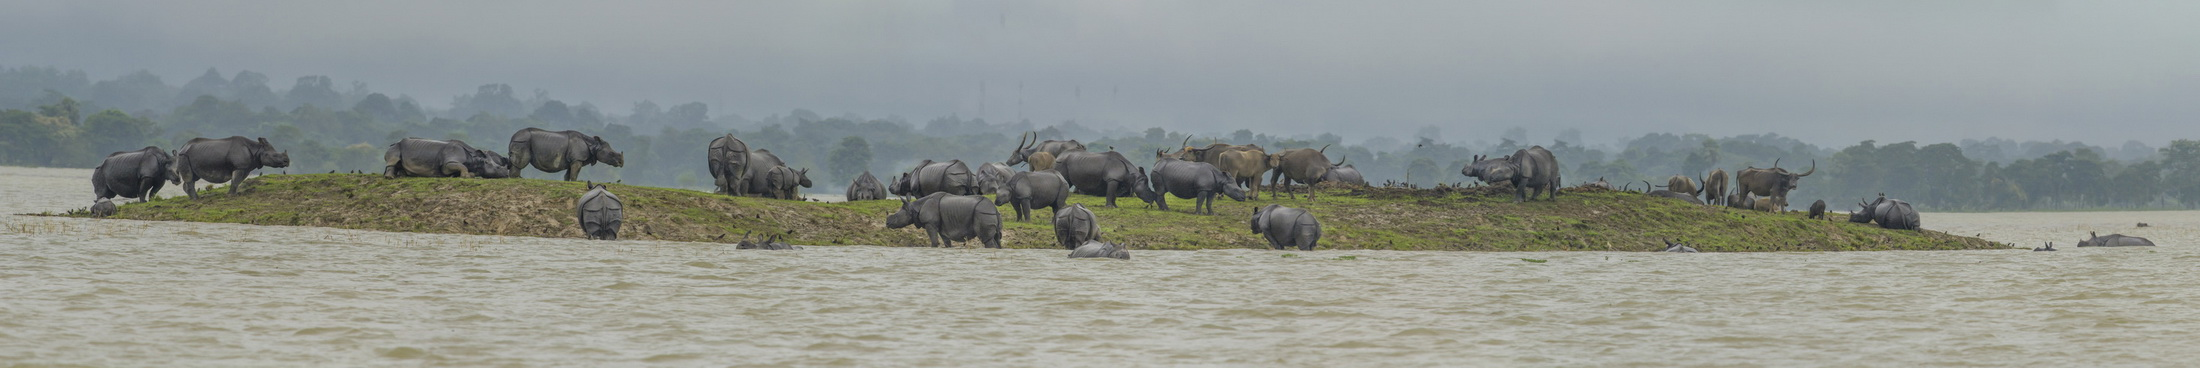 "For Dwivedi, the calamity revealed what happens to a peaceful landscape under great distress. Perhaps the rarest sight was of stubbornly territorial animals huddled on crammed, fast-submerging islands. Rhinos are solitary creatures who only come together to mate. Elephants live in tightly-knit, protective herds. ""A disaster alters animal behavior. You see them do extremely uncharacteristic things,"" says Dwivedi. ""For example, I have never seen elephants, rhinos, deer, and wild water buffalo standing so close to each other. We could sense their fear."""